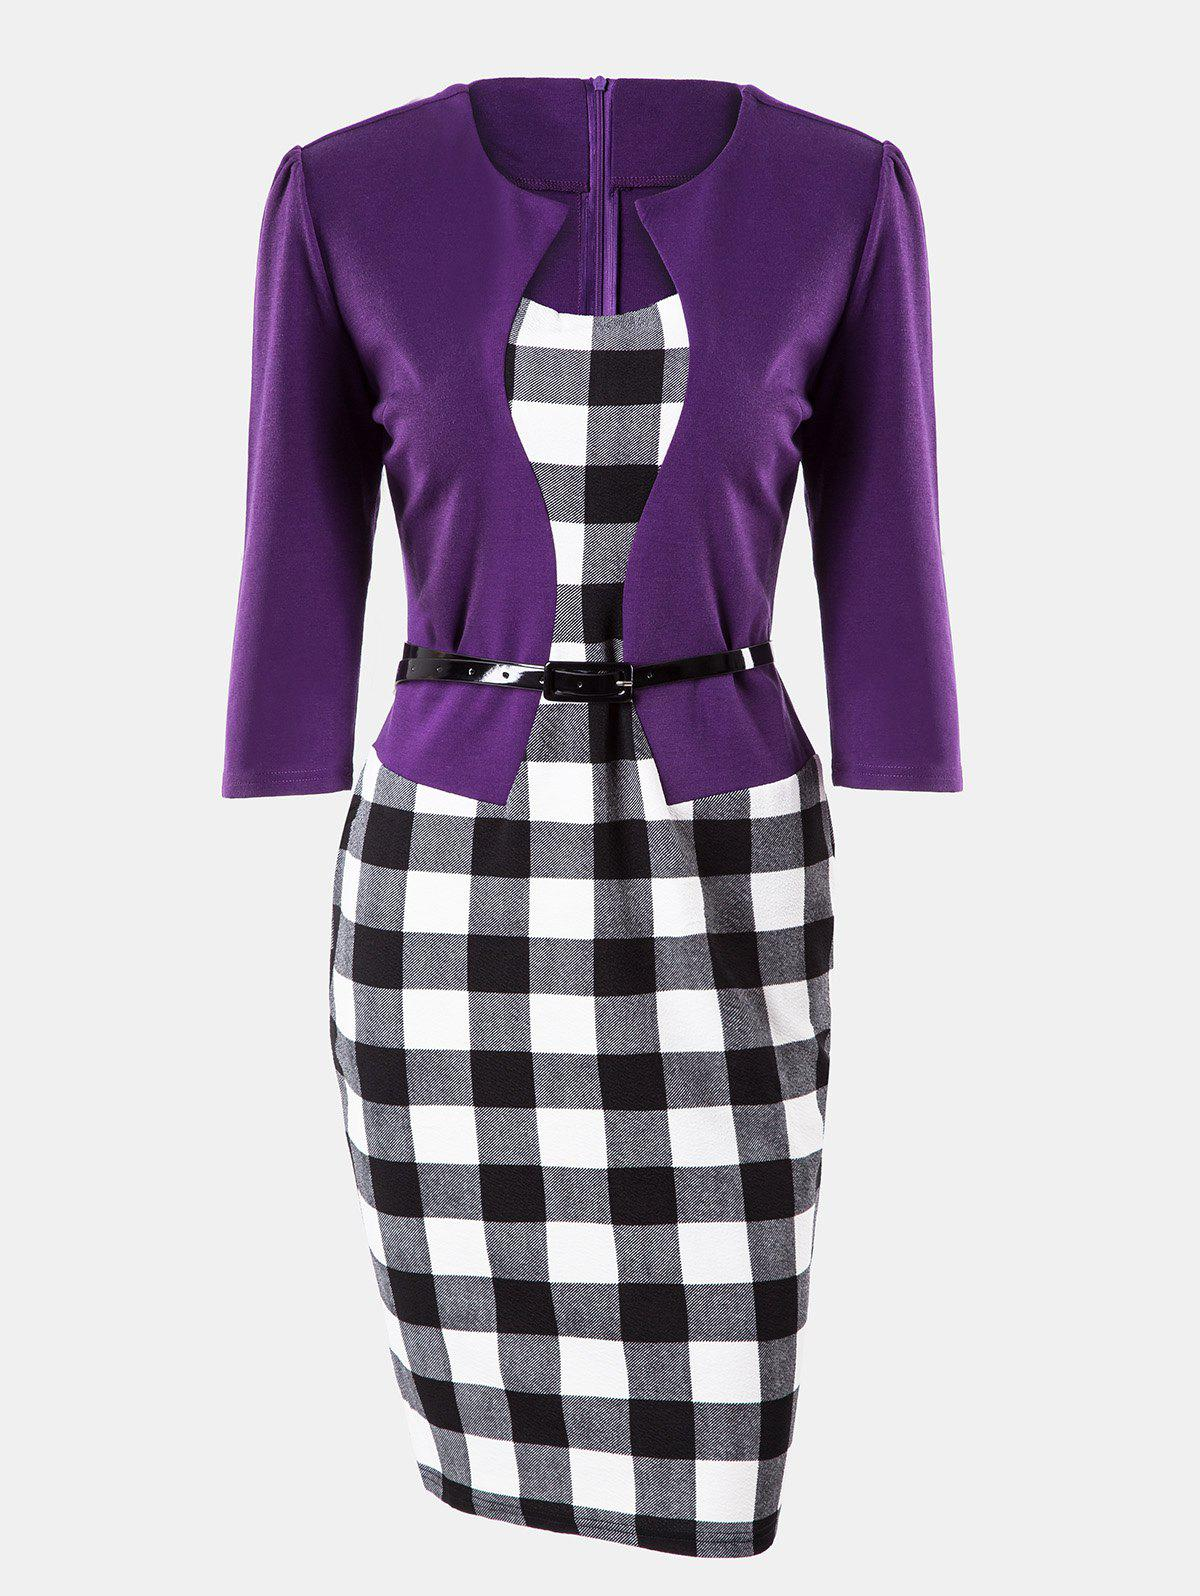 Affordable Plaid Stitching Seven Sleeves Business Slim Pencil Dress